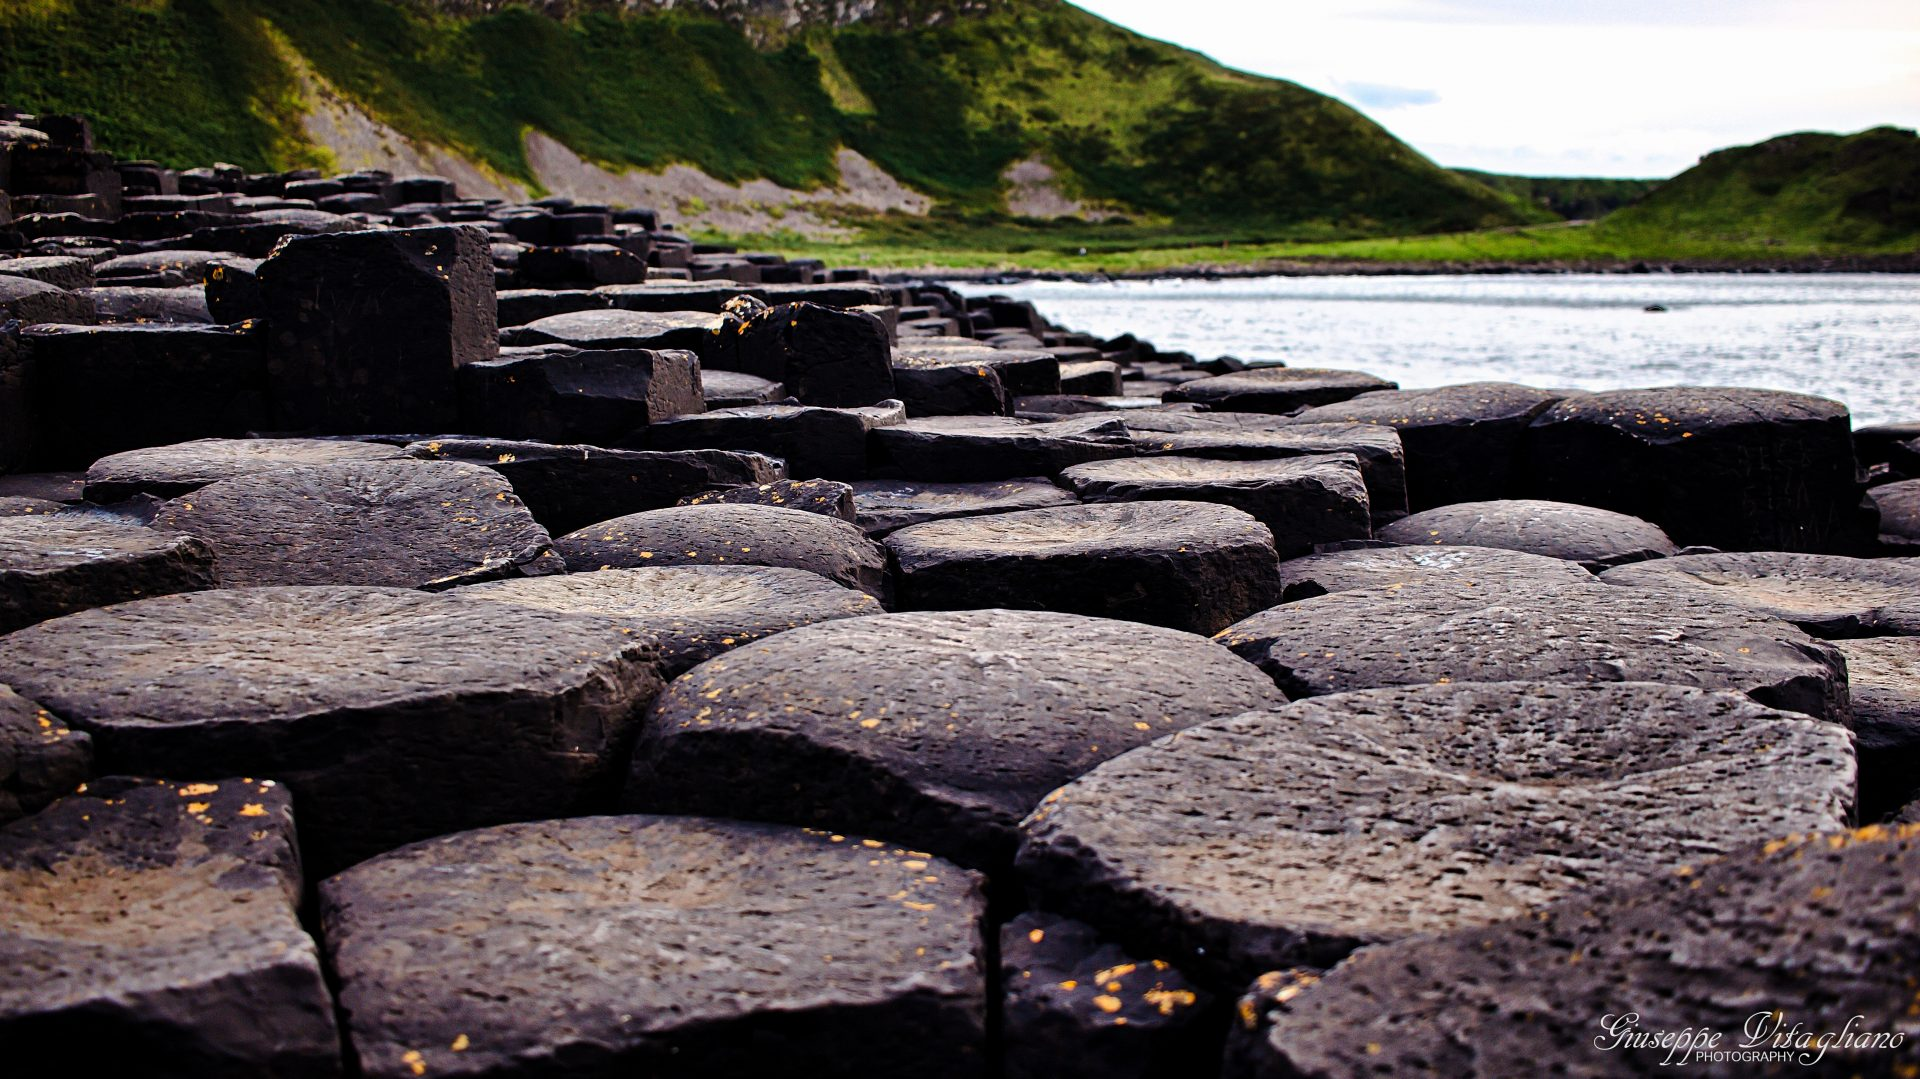 The Giant's Causeway - Northern Ireland 2018